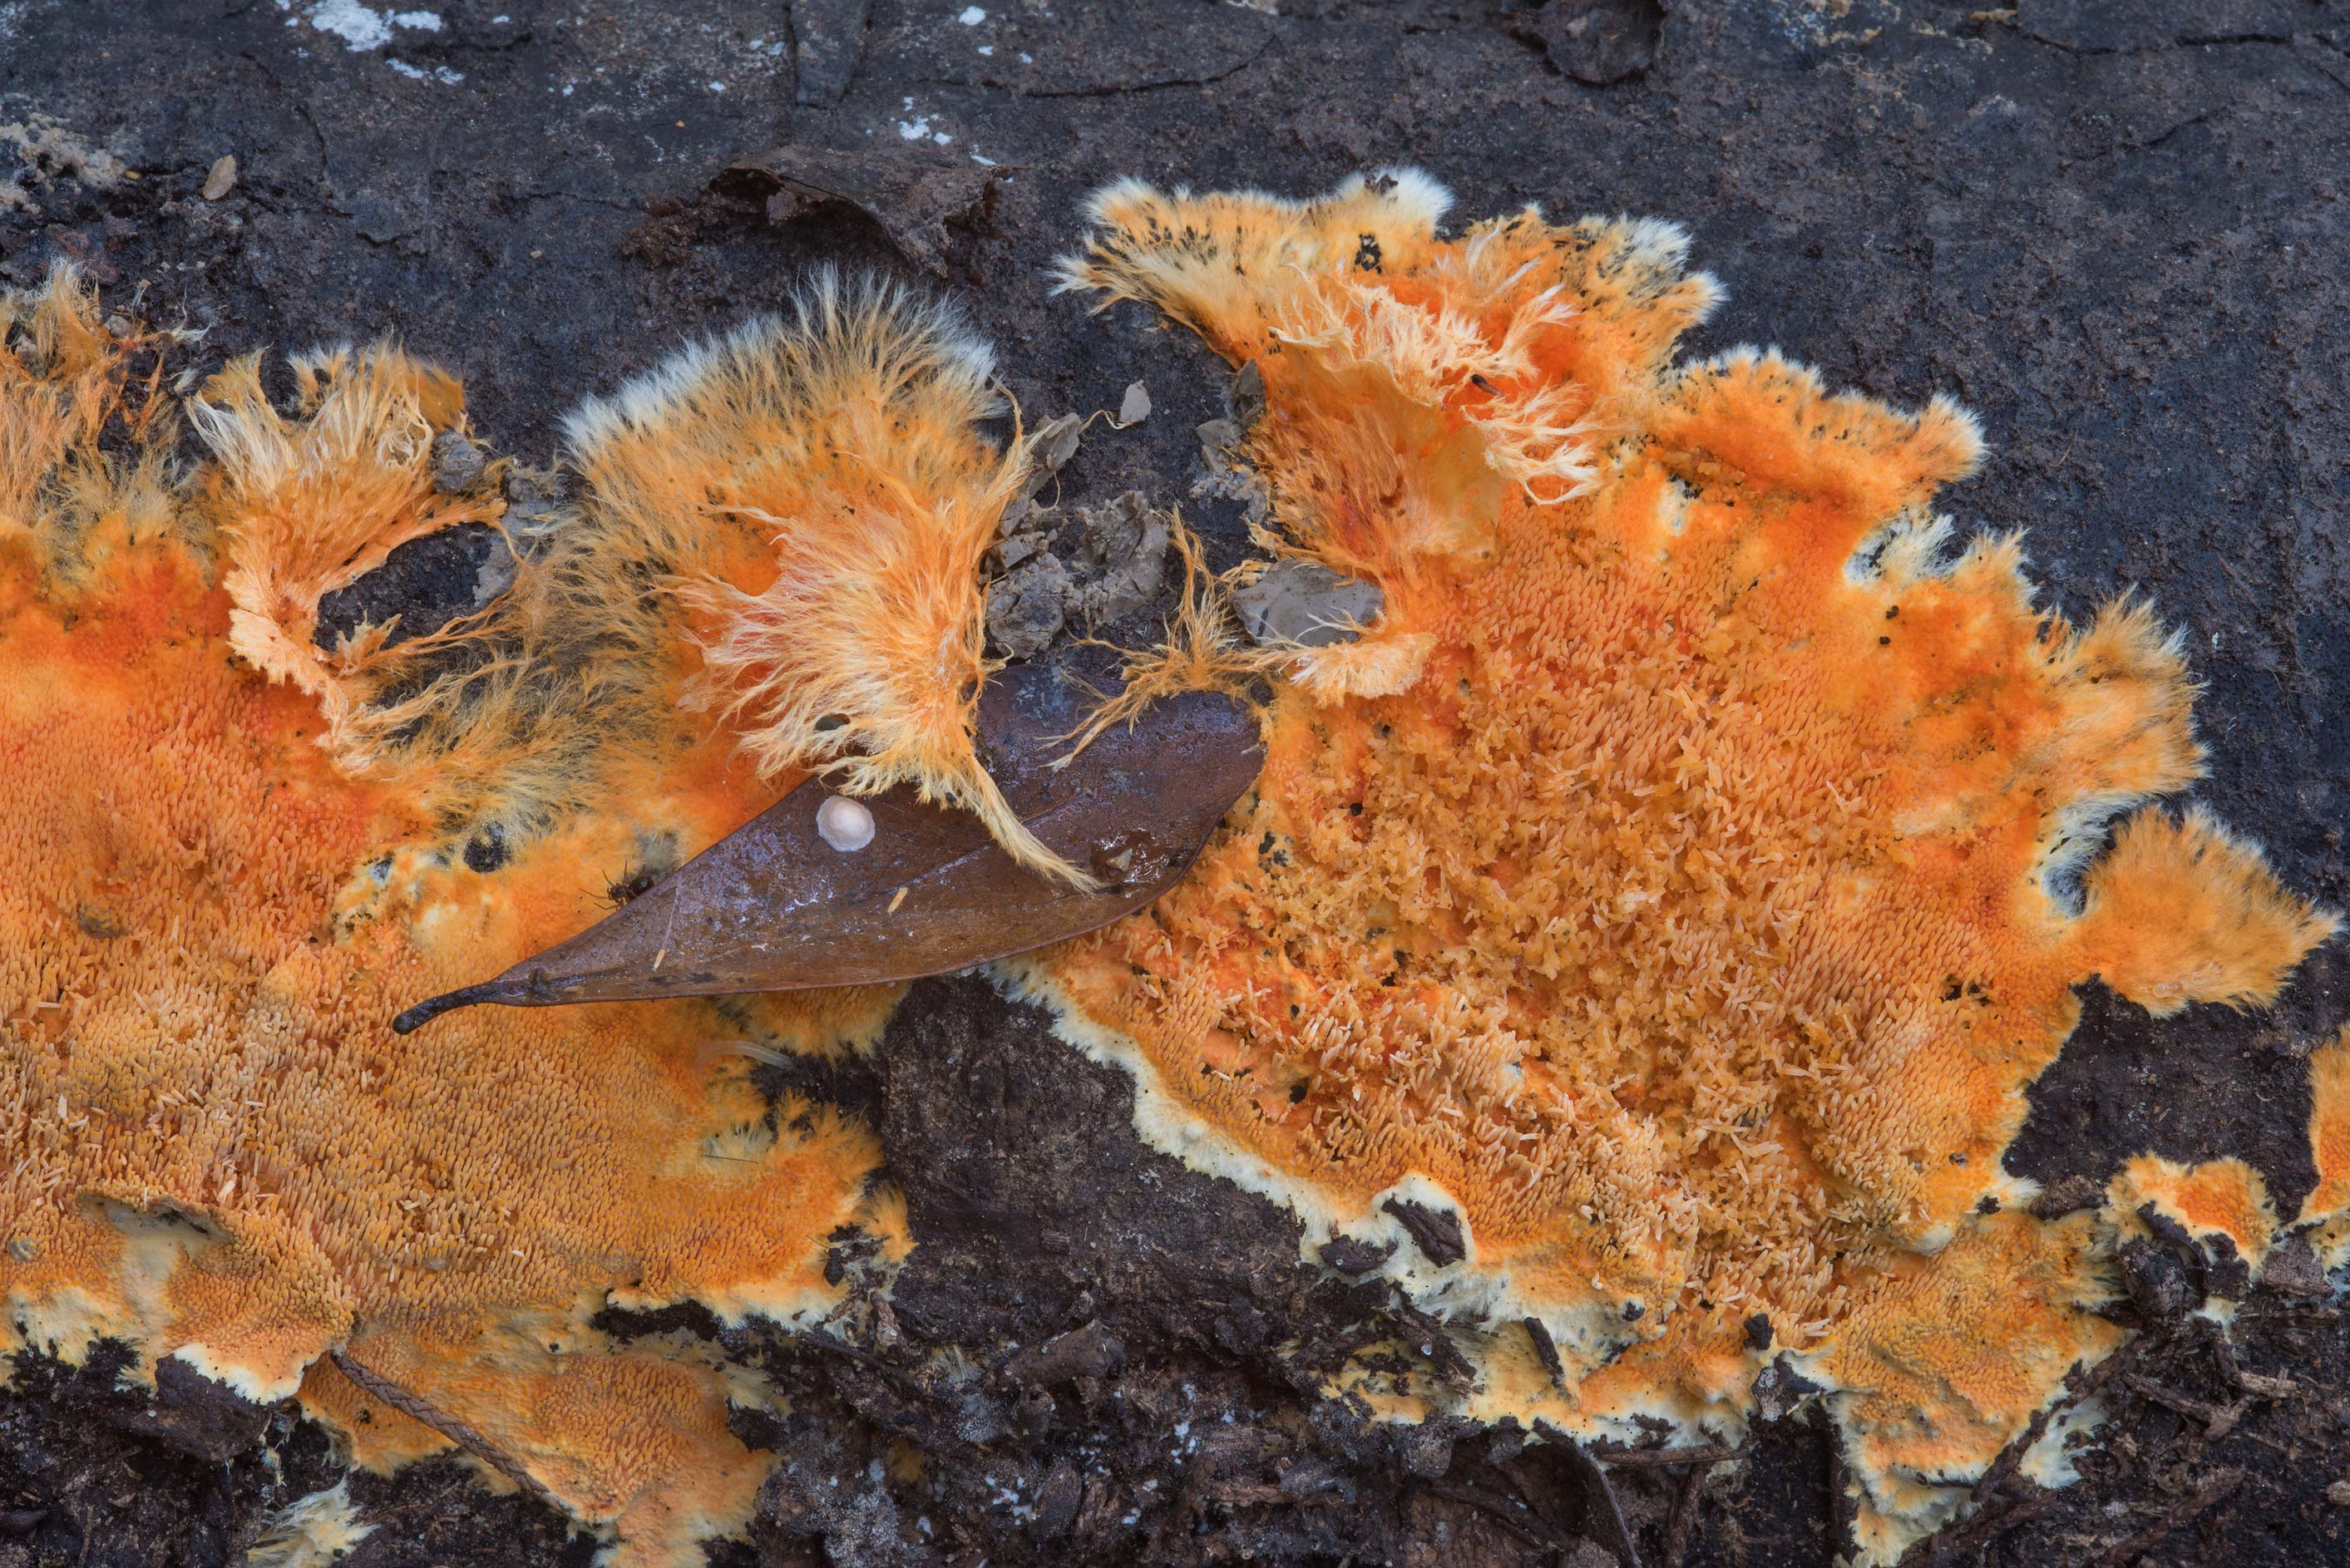 Bright orange crust fungus Hydnophlebia...Nature Trail. College Station, Texas